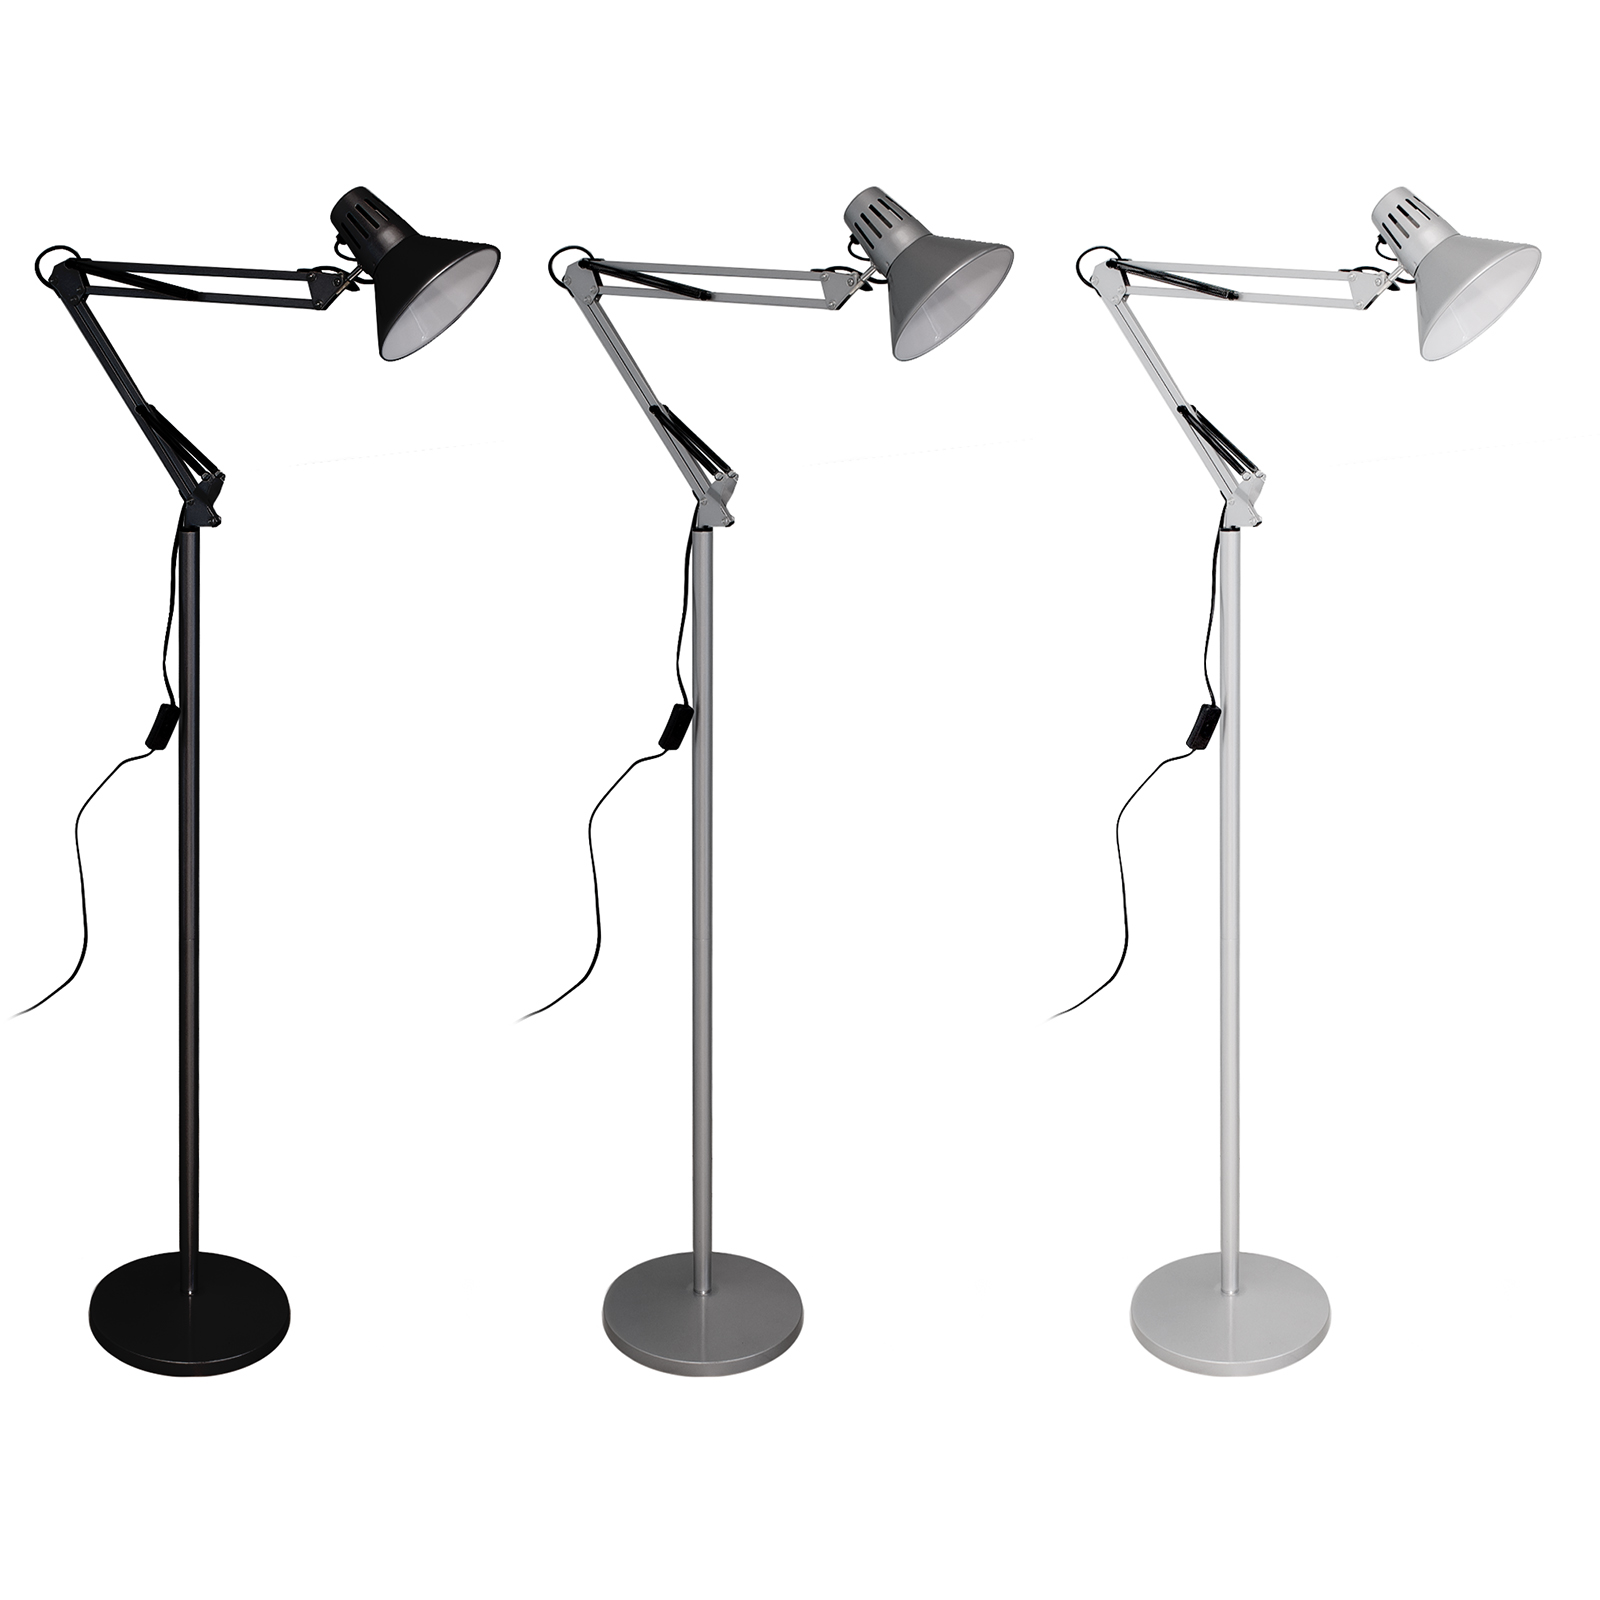 LED lamp E27 10W desk table floor lamp office flexible arm